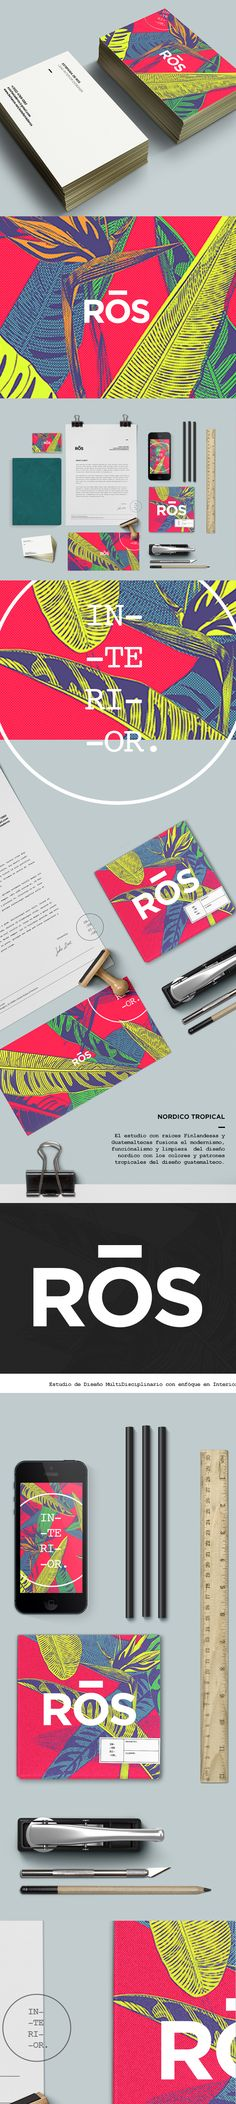 "Branding Concept for Ros Interior Design, Ros is a an Interior Design Studio based in Guatemala lead by Estefania de Ros and Gustavo Quintana, The Studio has a unique Style that se defines as ""Nordico Tropical"" a fusion between the Modernism and Functiona…"